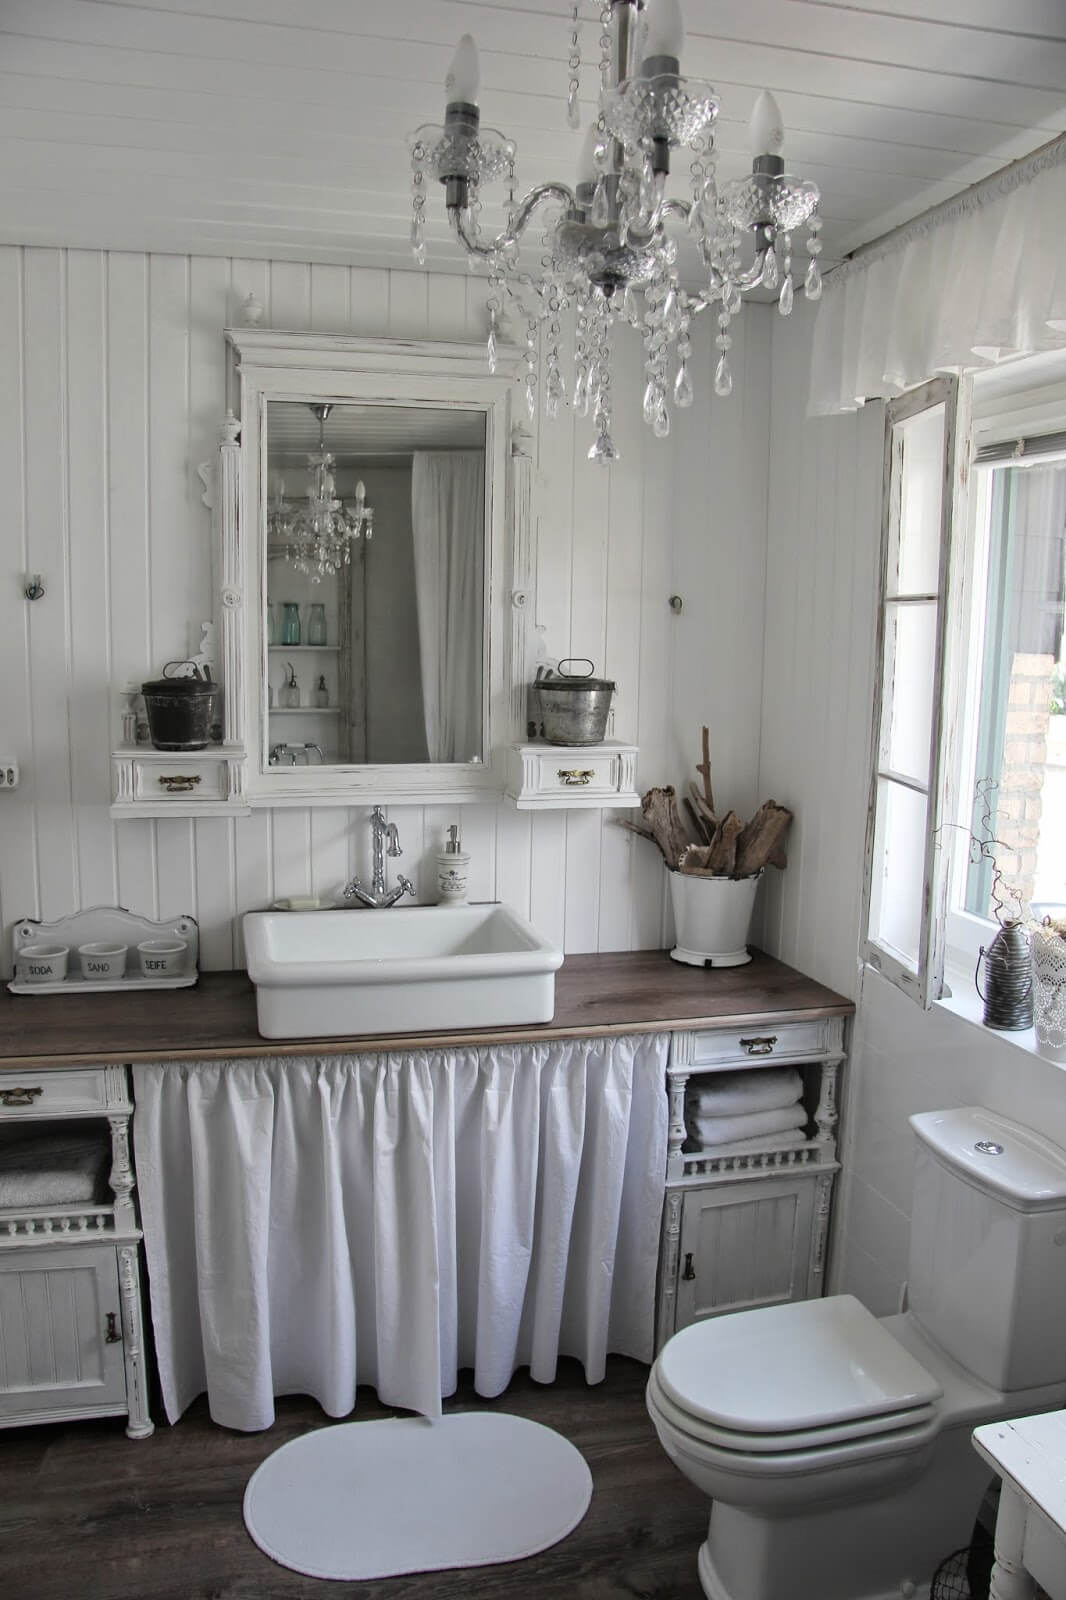 15 Lovely Shabby Chic Bathroom Decor Ideas